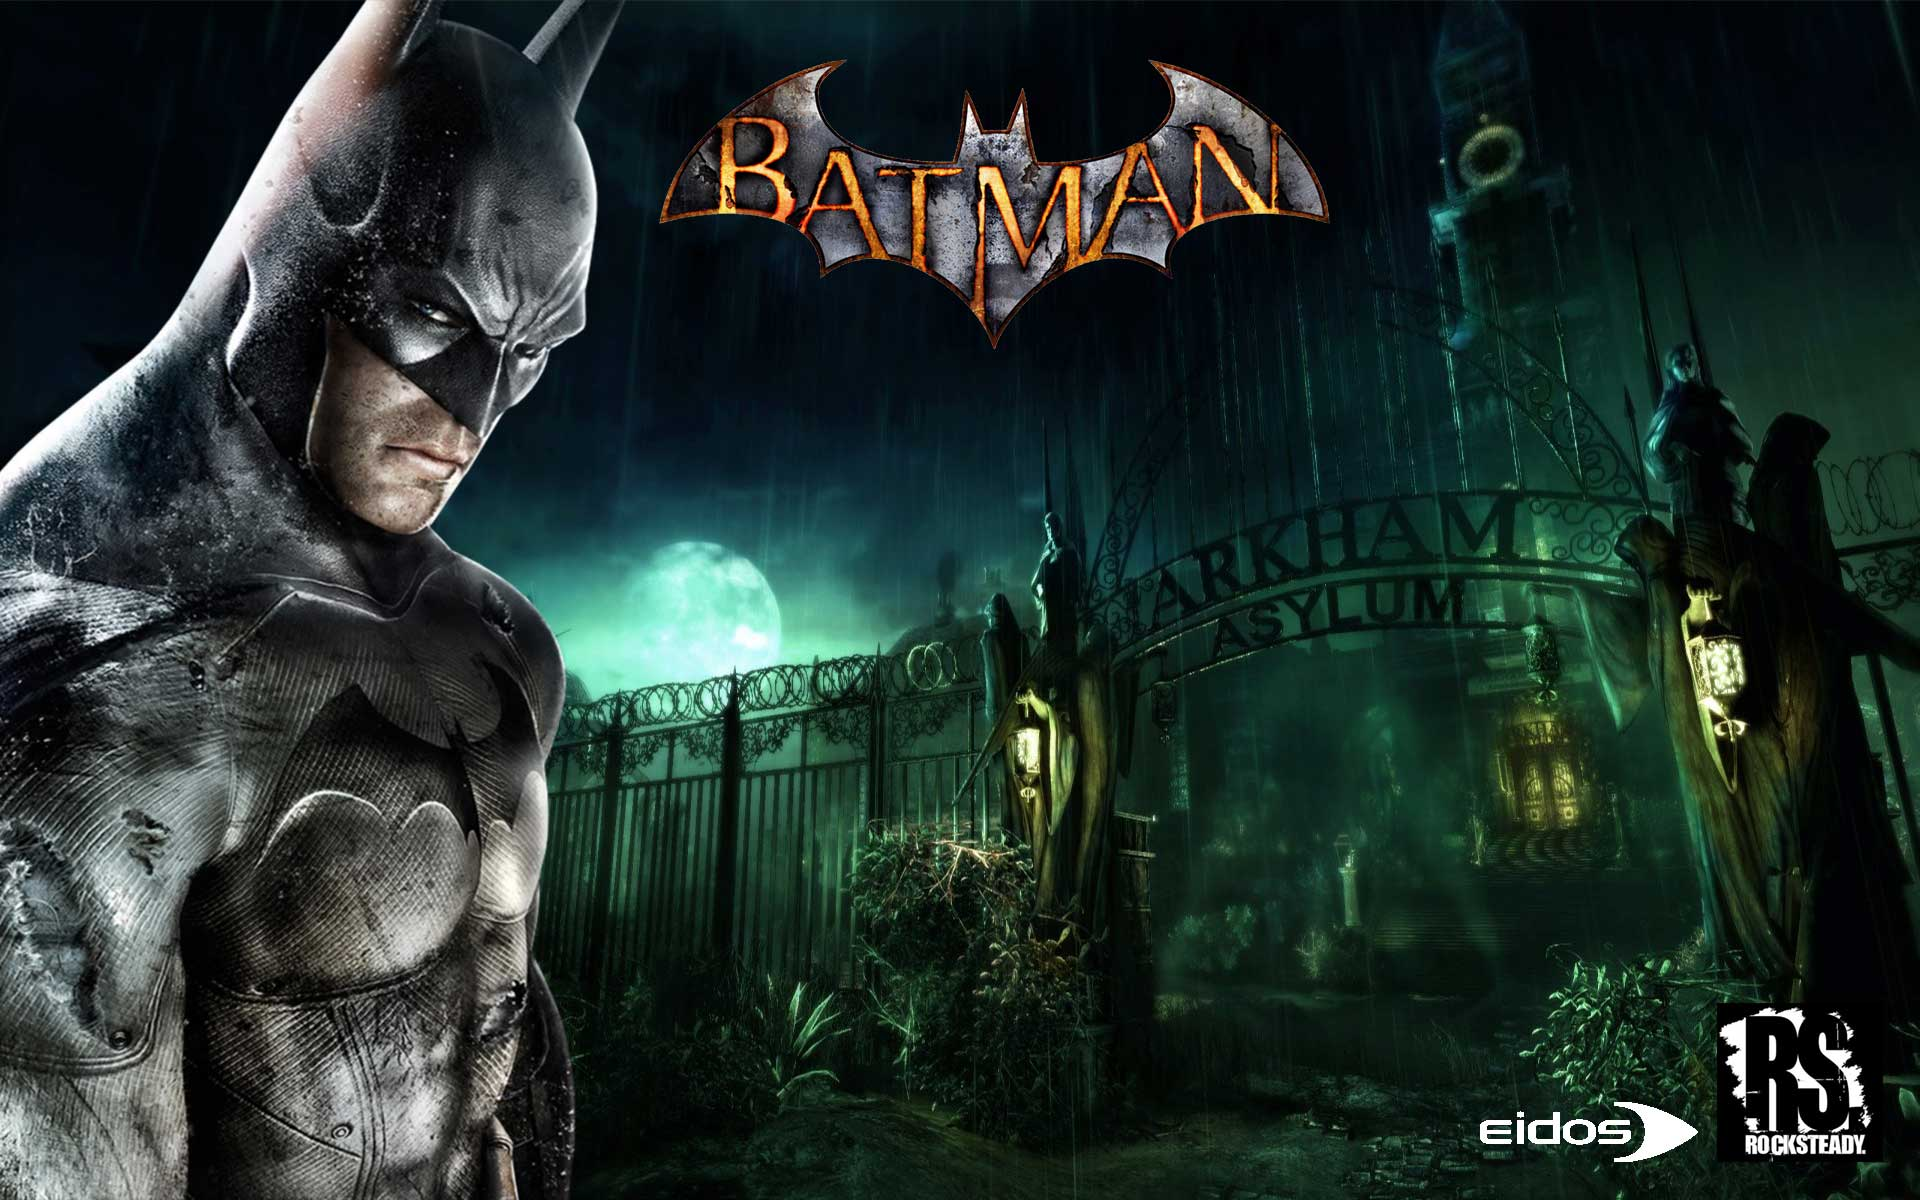 Batman Arkham Asylum Wallpapers 4110 Hd Wallpapers in Games   Imagesci 1920x1200